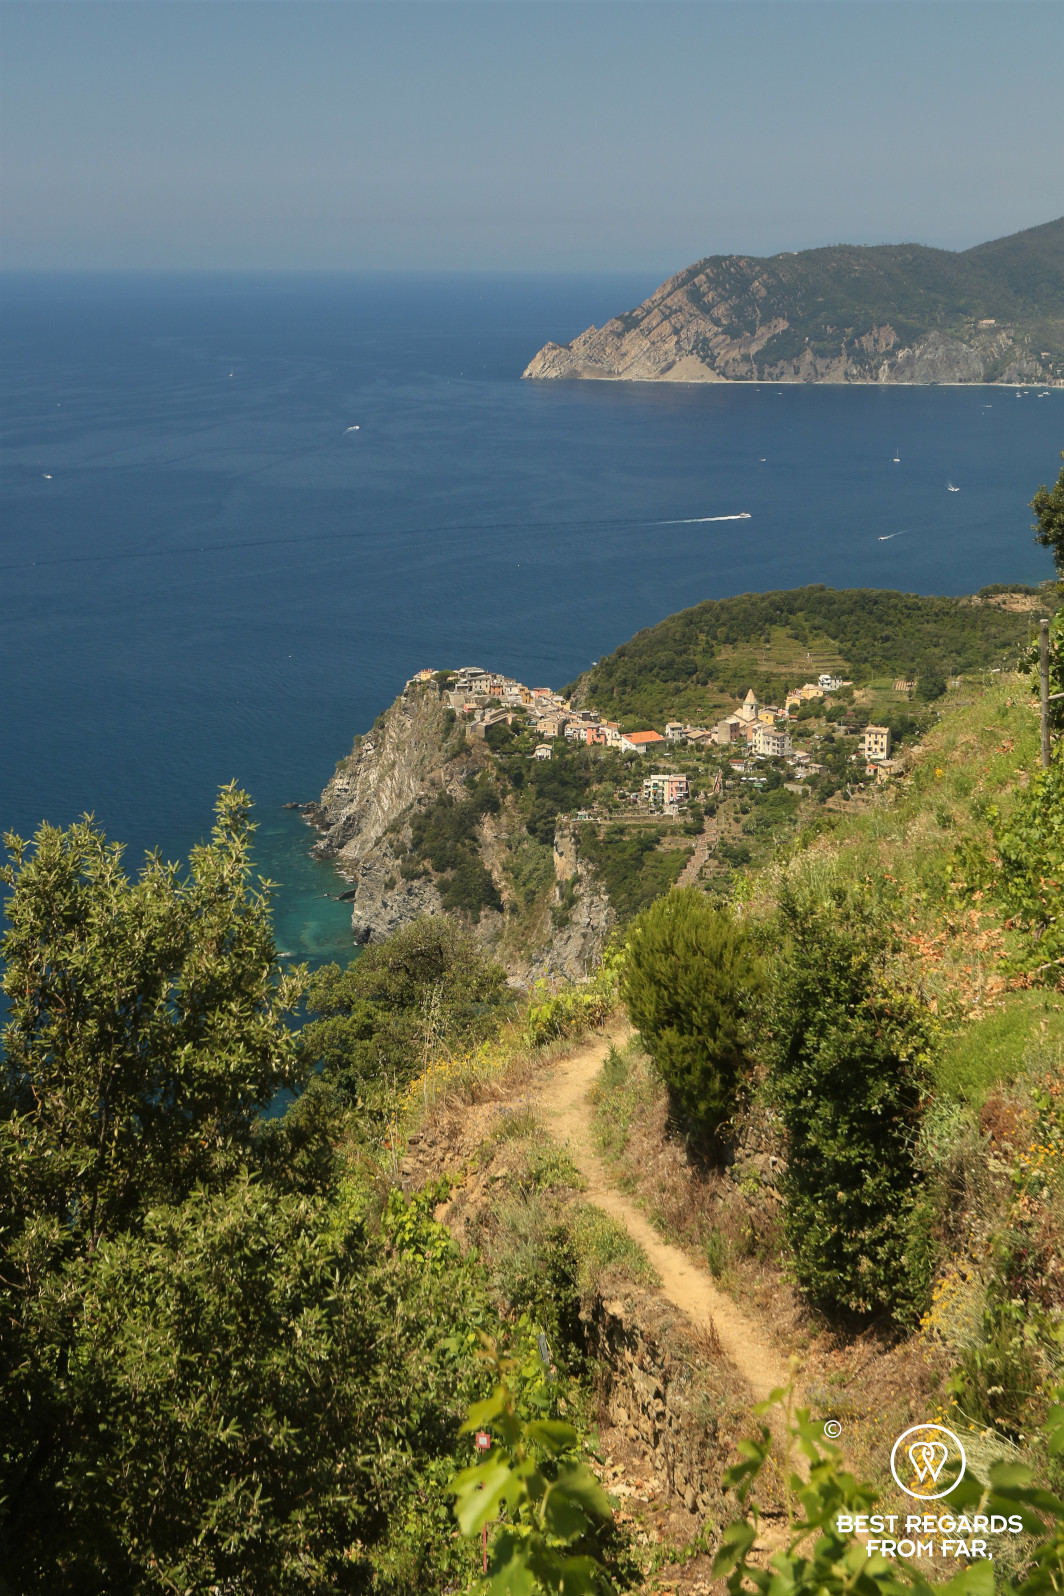 Hiking path leading to a small village along the seaside in Italy